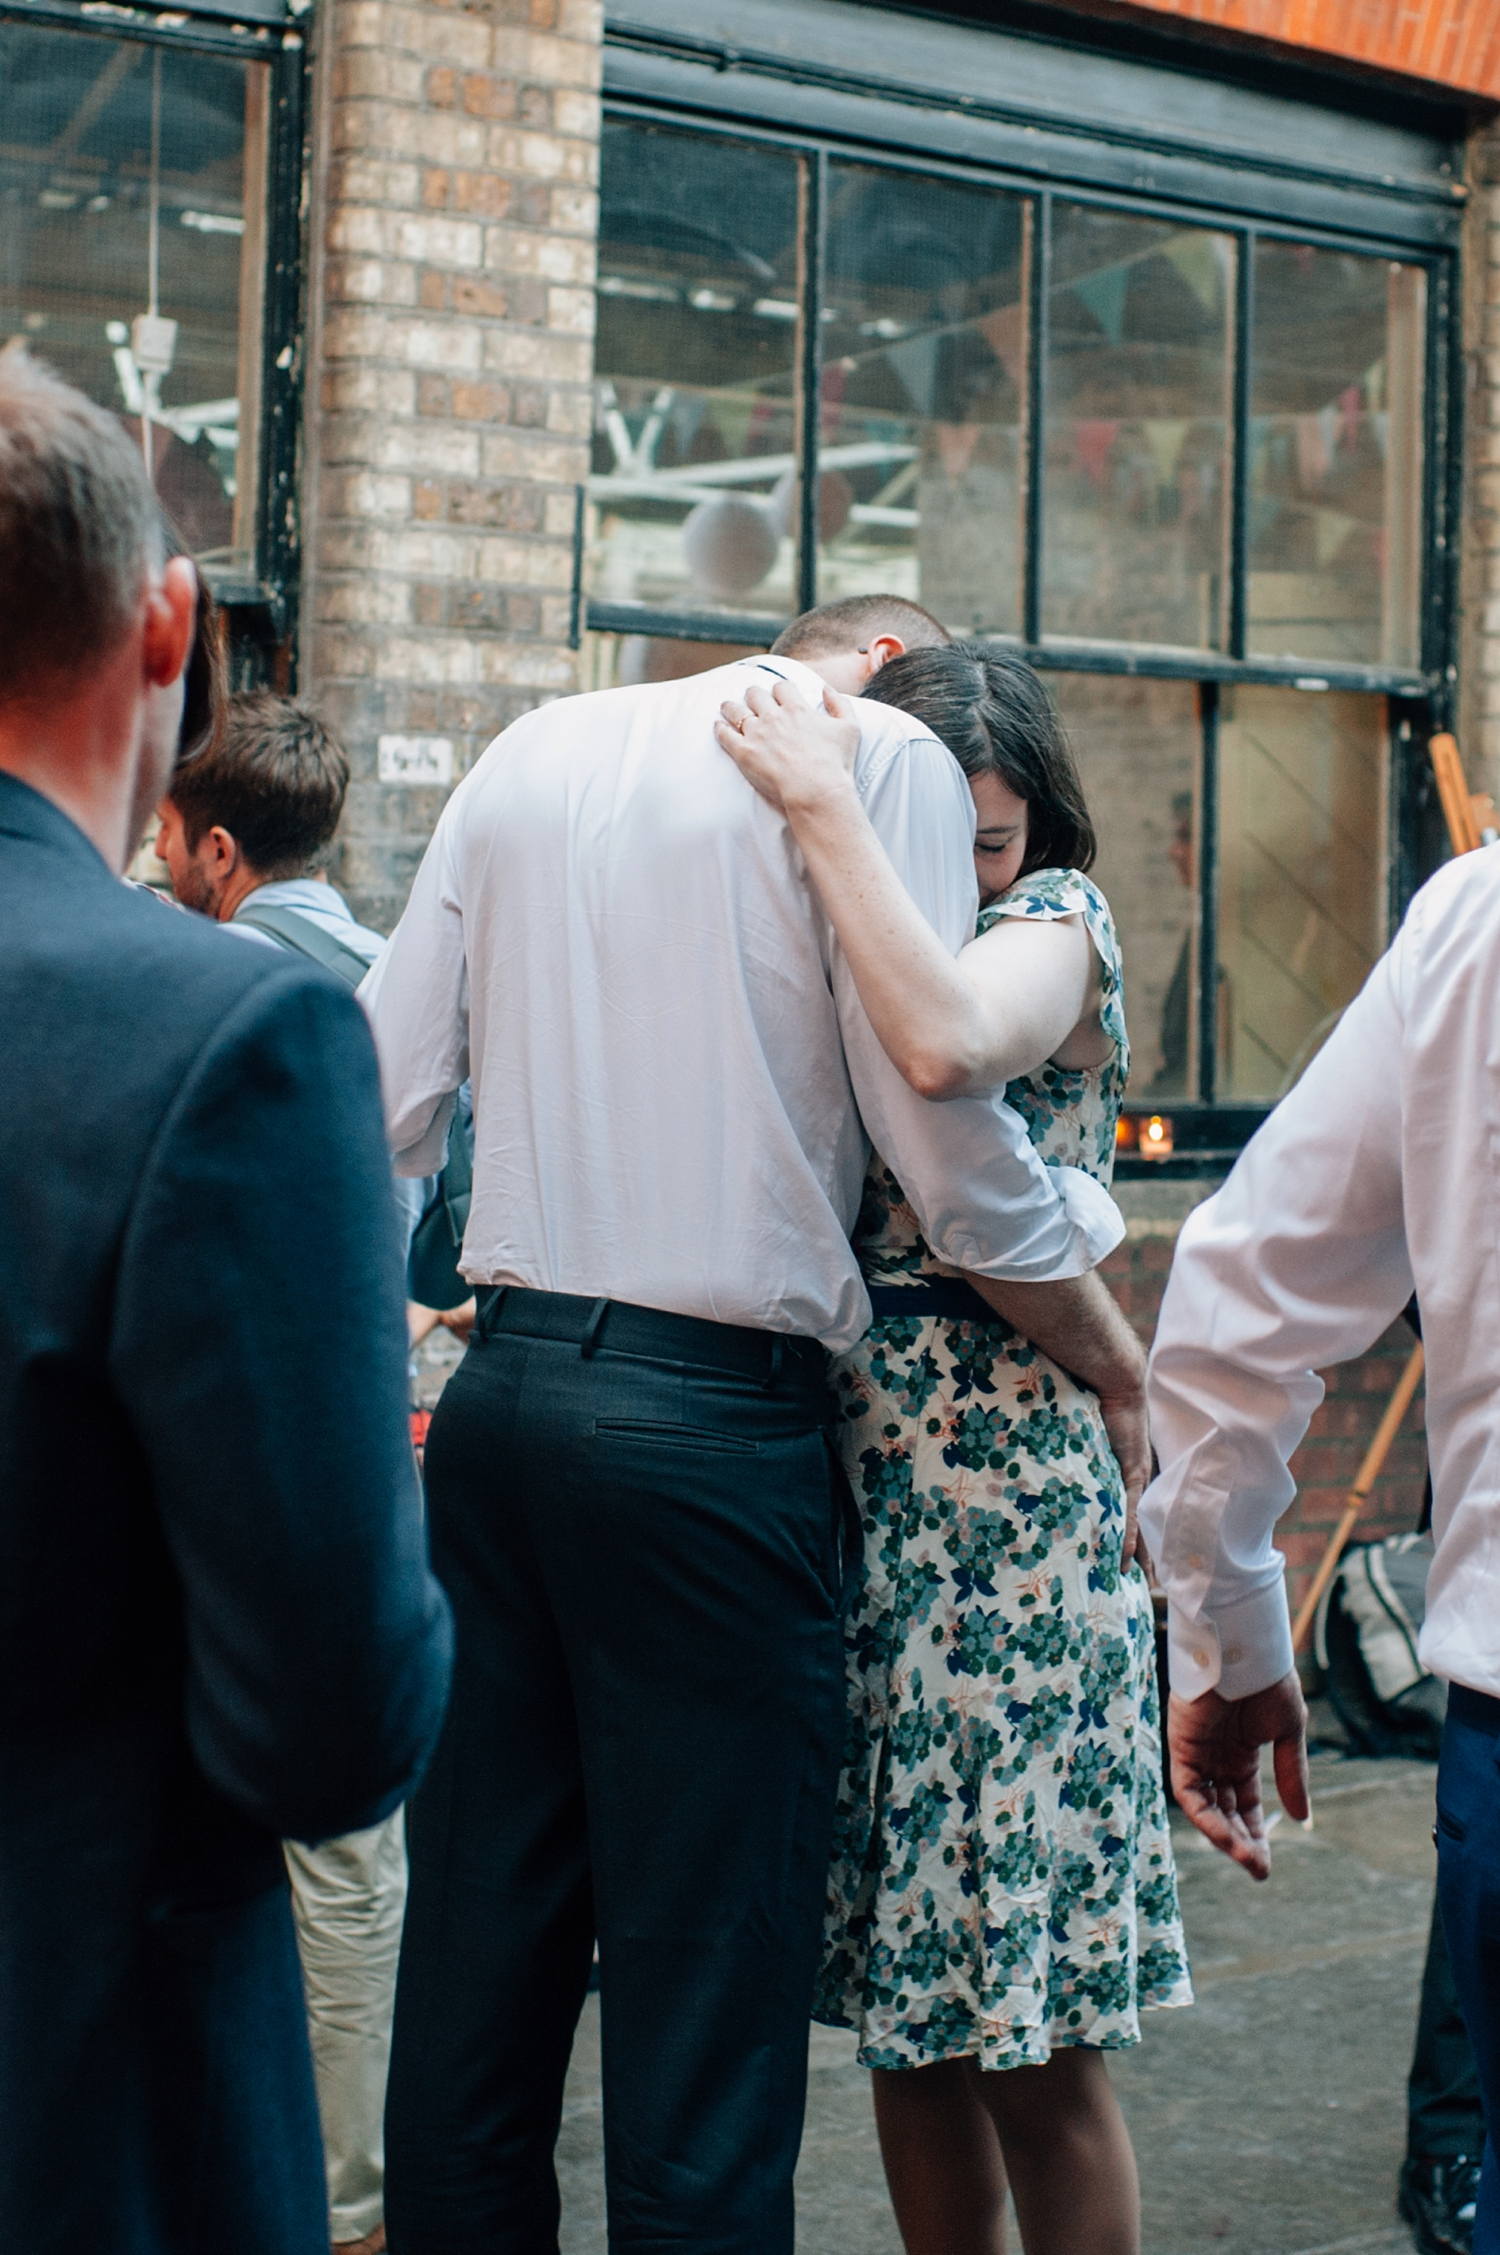 0204-lisa-devine-alternative-wedding-photography-london-hackney-dalston-london-photography-townhall-hotel.JPG